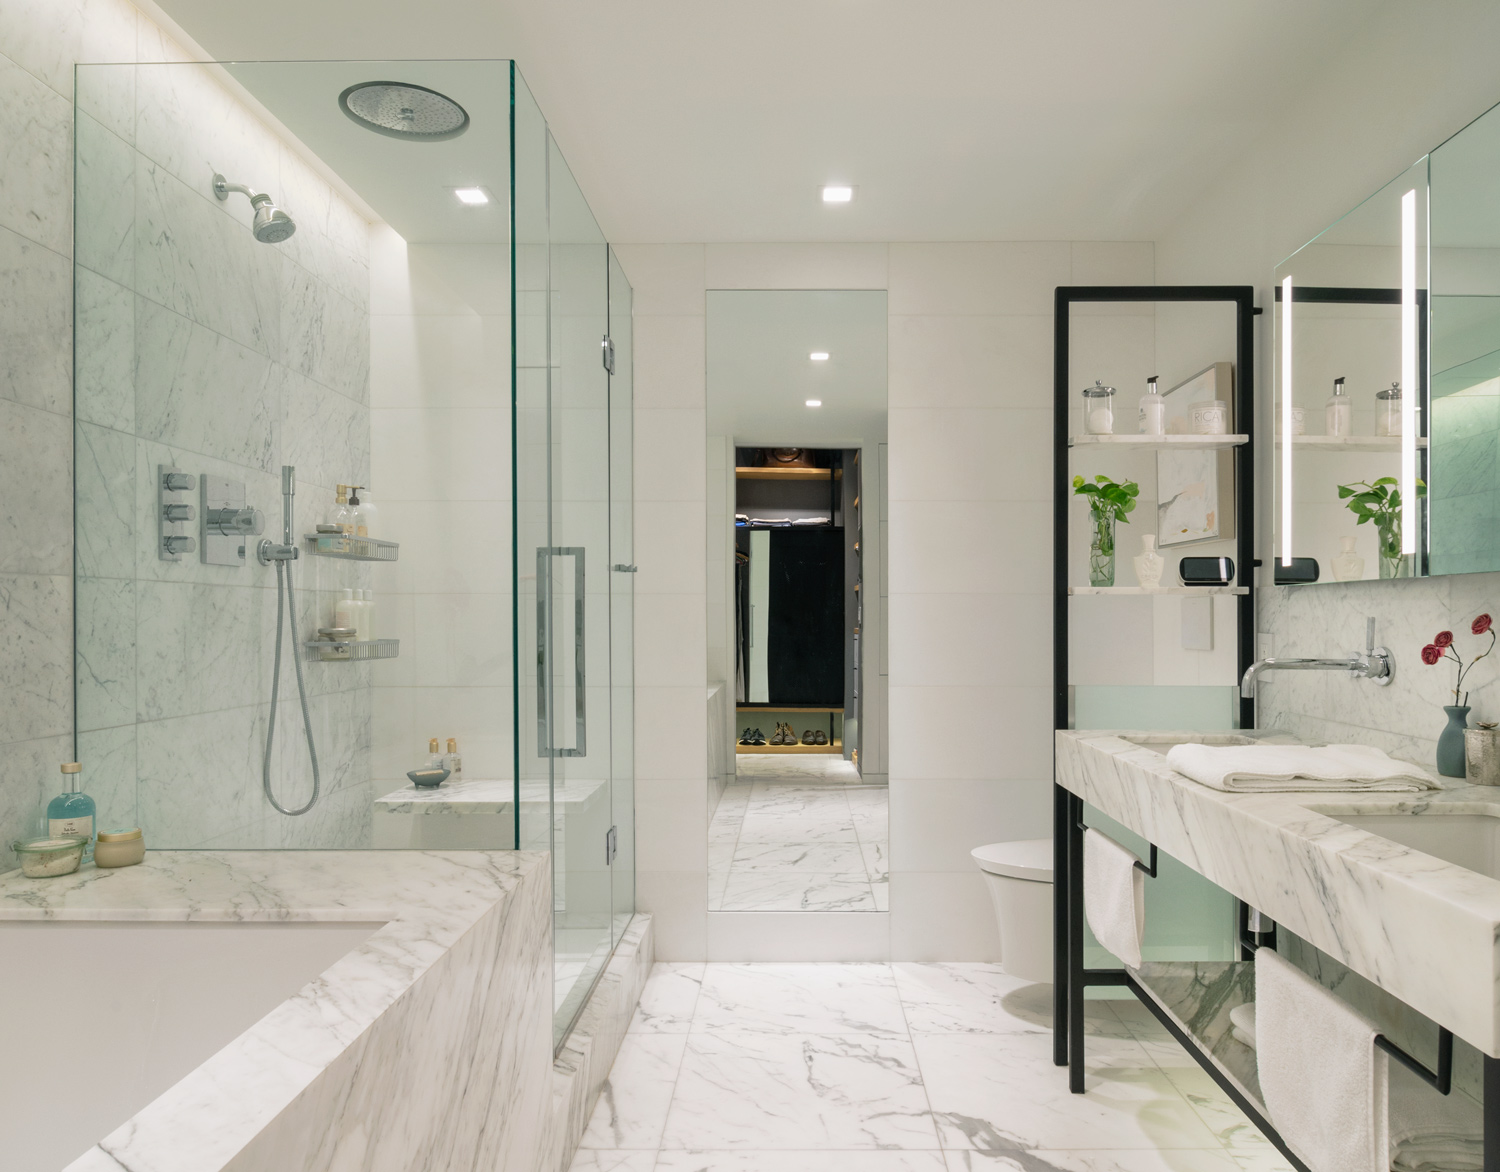 new-york-architect-adi-gershoni-master-bathroom-4.jpg